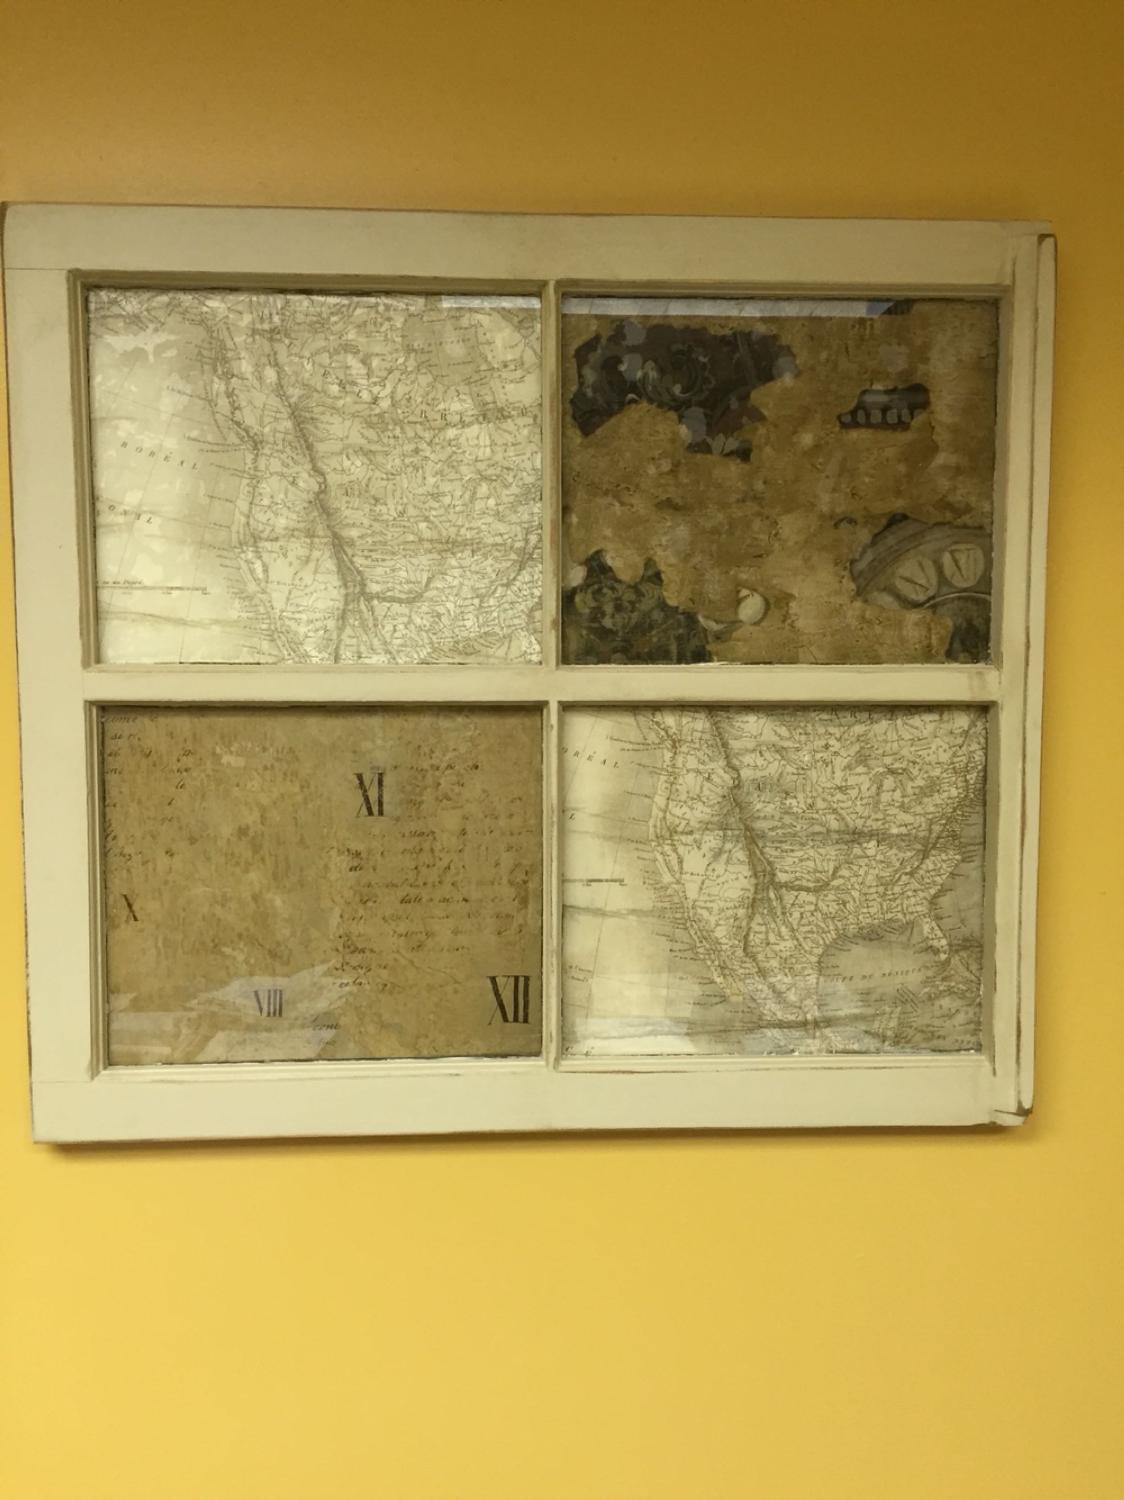 Best Vintage Window Wall Art for sale in Redwood Falls, Minnesota ...